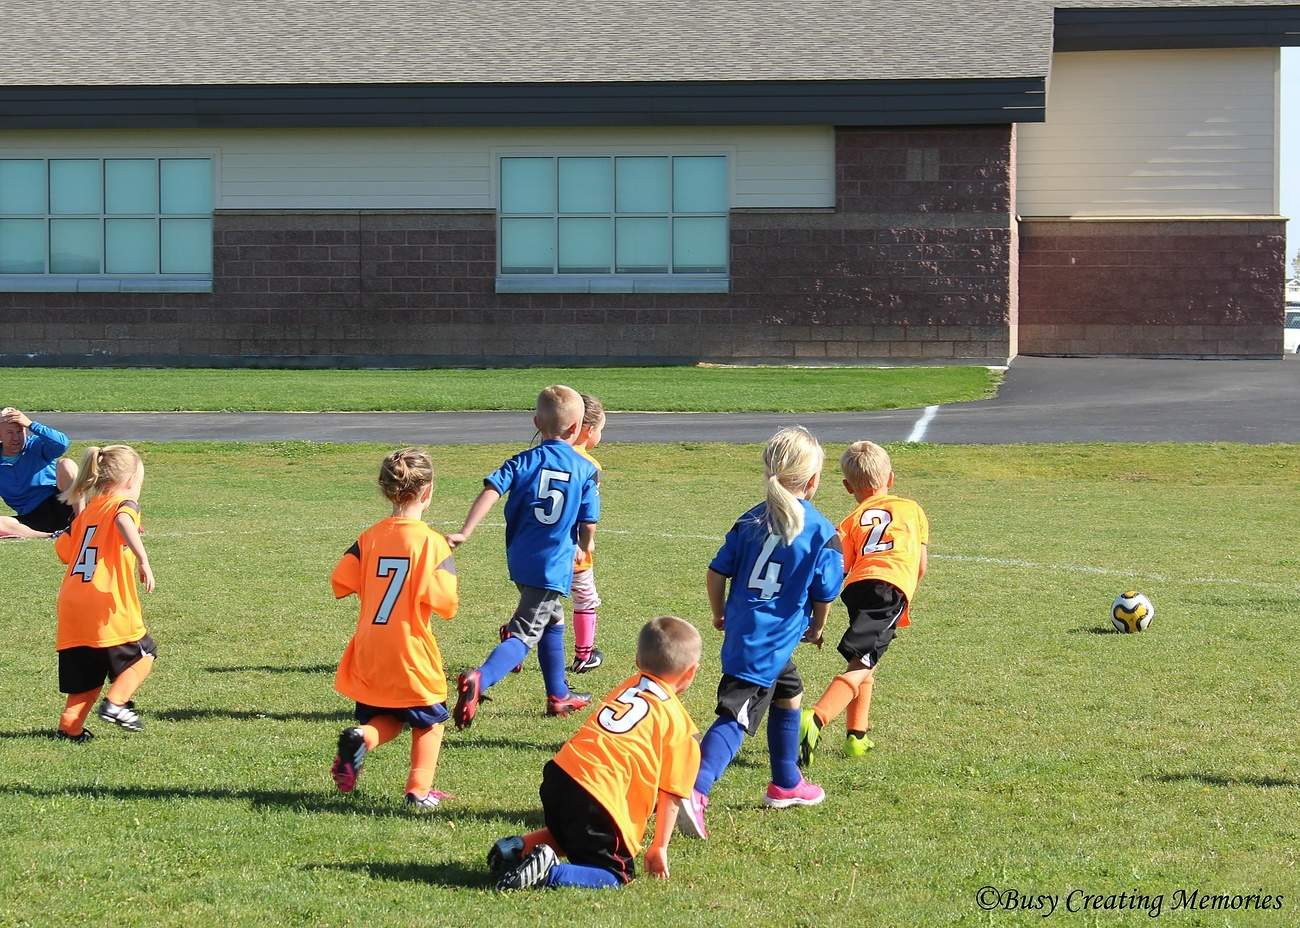 Kids benefit from playing soccer